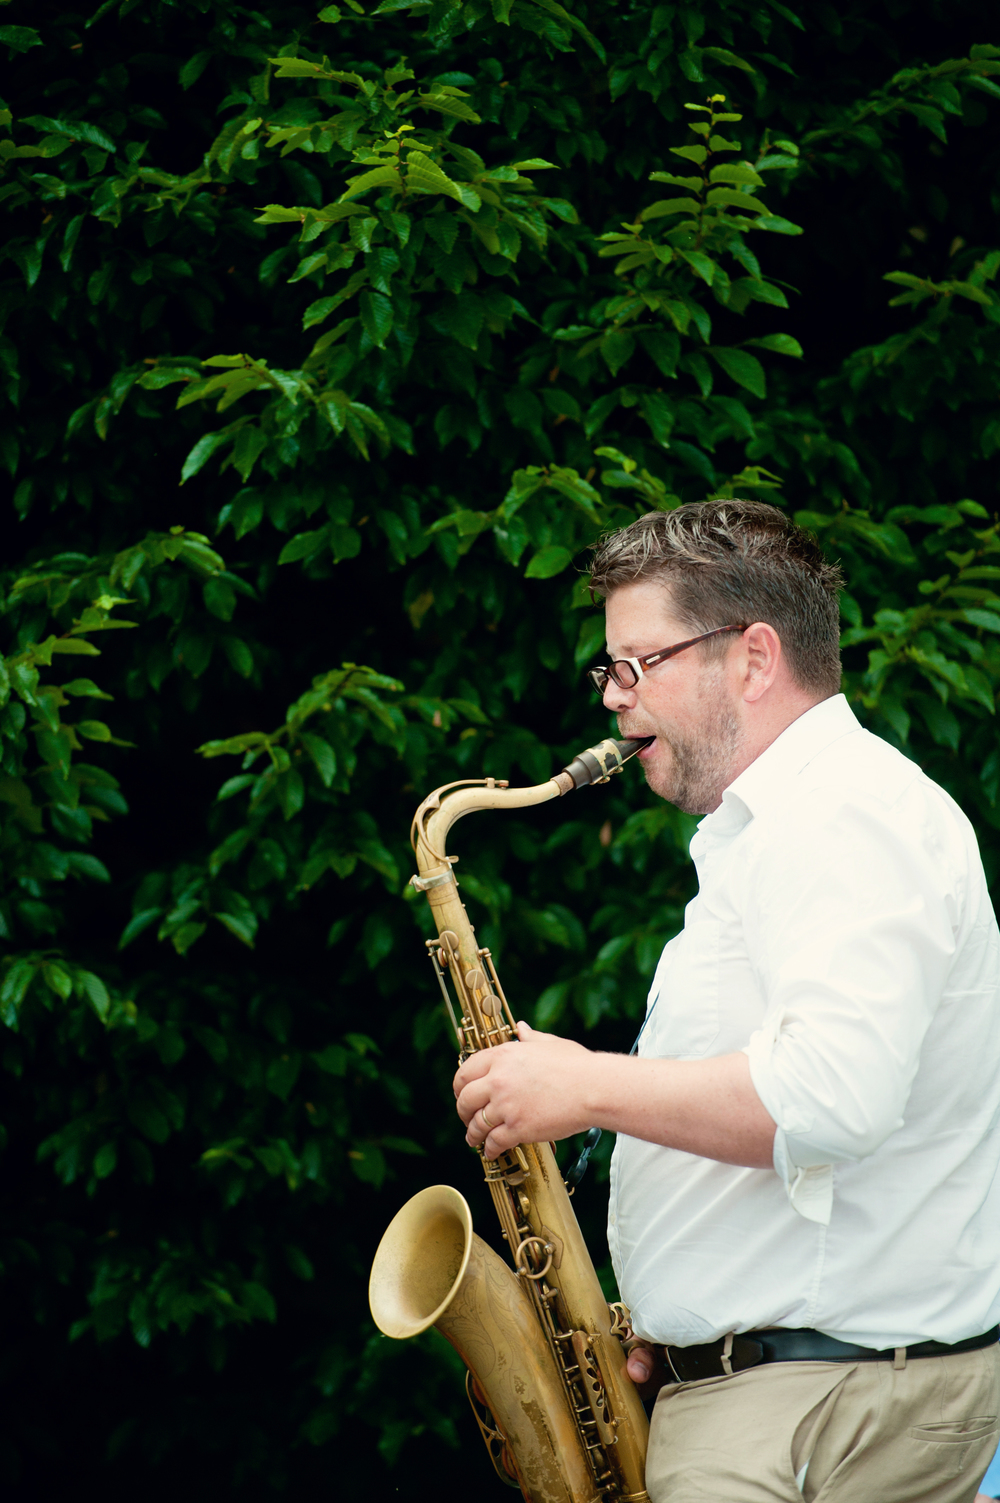 Kilshane House - Wedding Photography Ireland - saxophone player.JPG